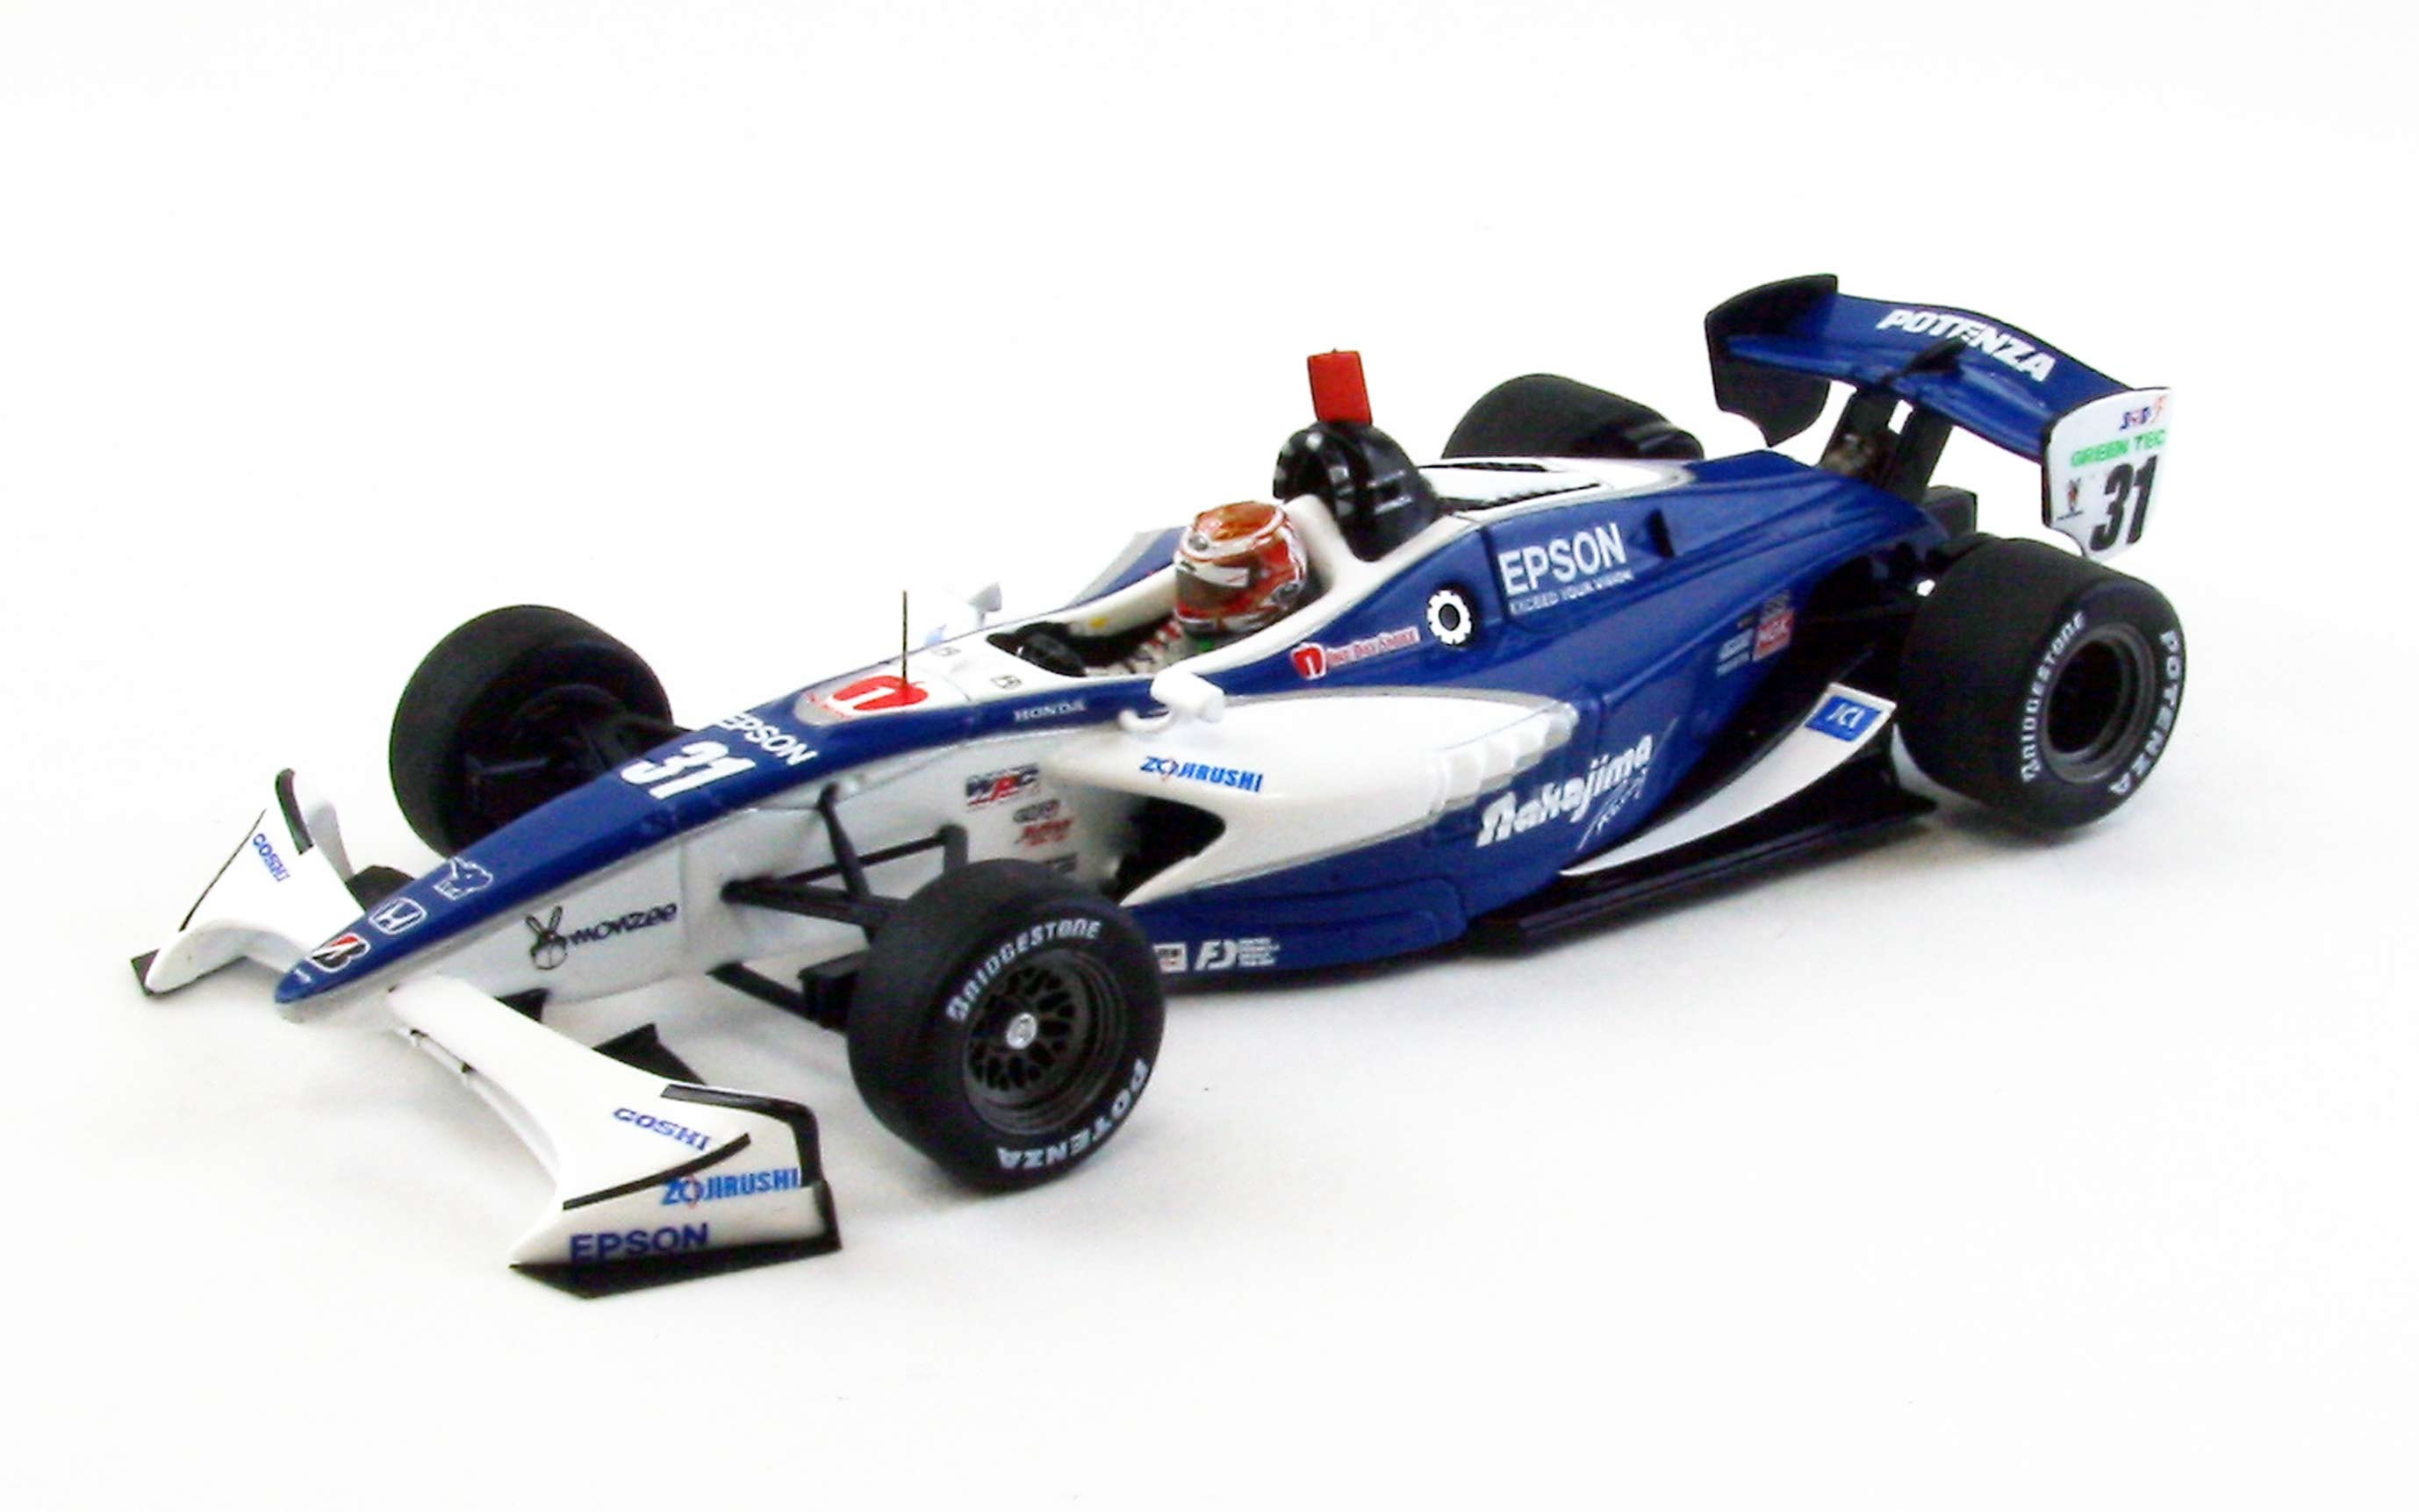 【44865】NAKAJIMA RACING No. 31 Formula NIPPON 2012 【RESIN】